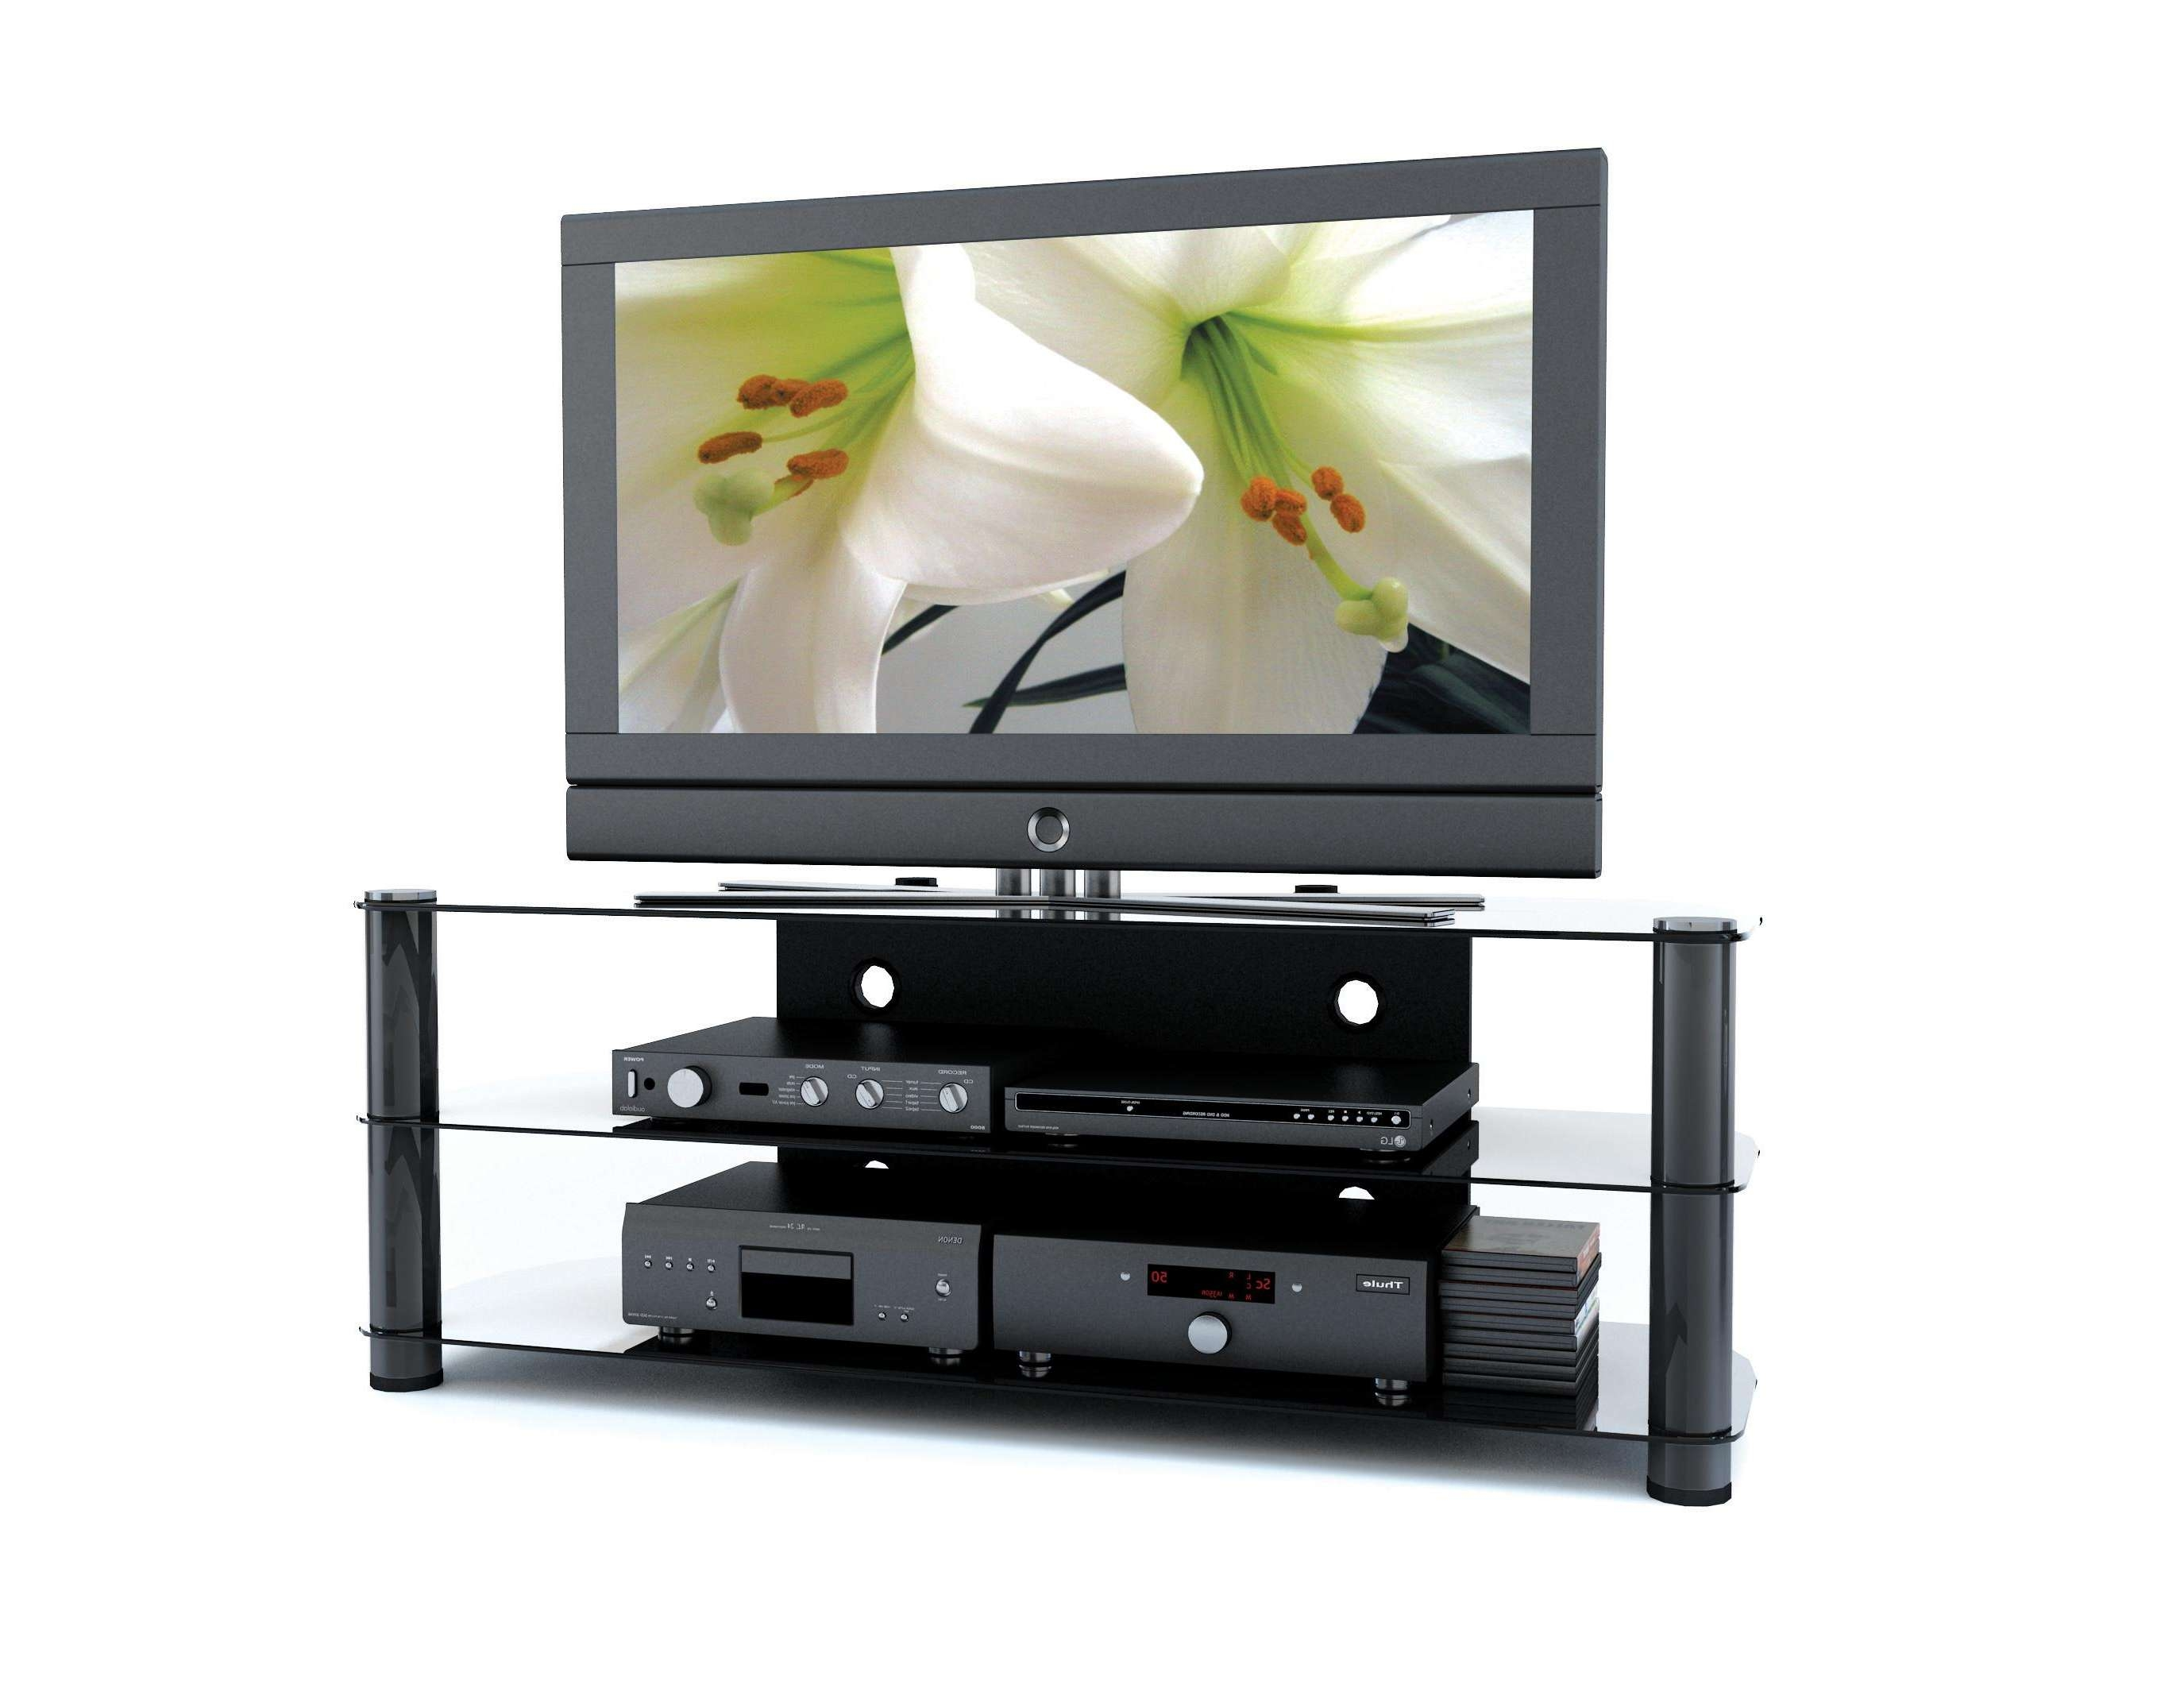 Inch Tv Stand With Modern Glass Flat Screen Decoration Furniture Throughout Modern Glass Tv Stands (Gallery 15 of 15)